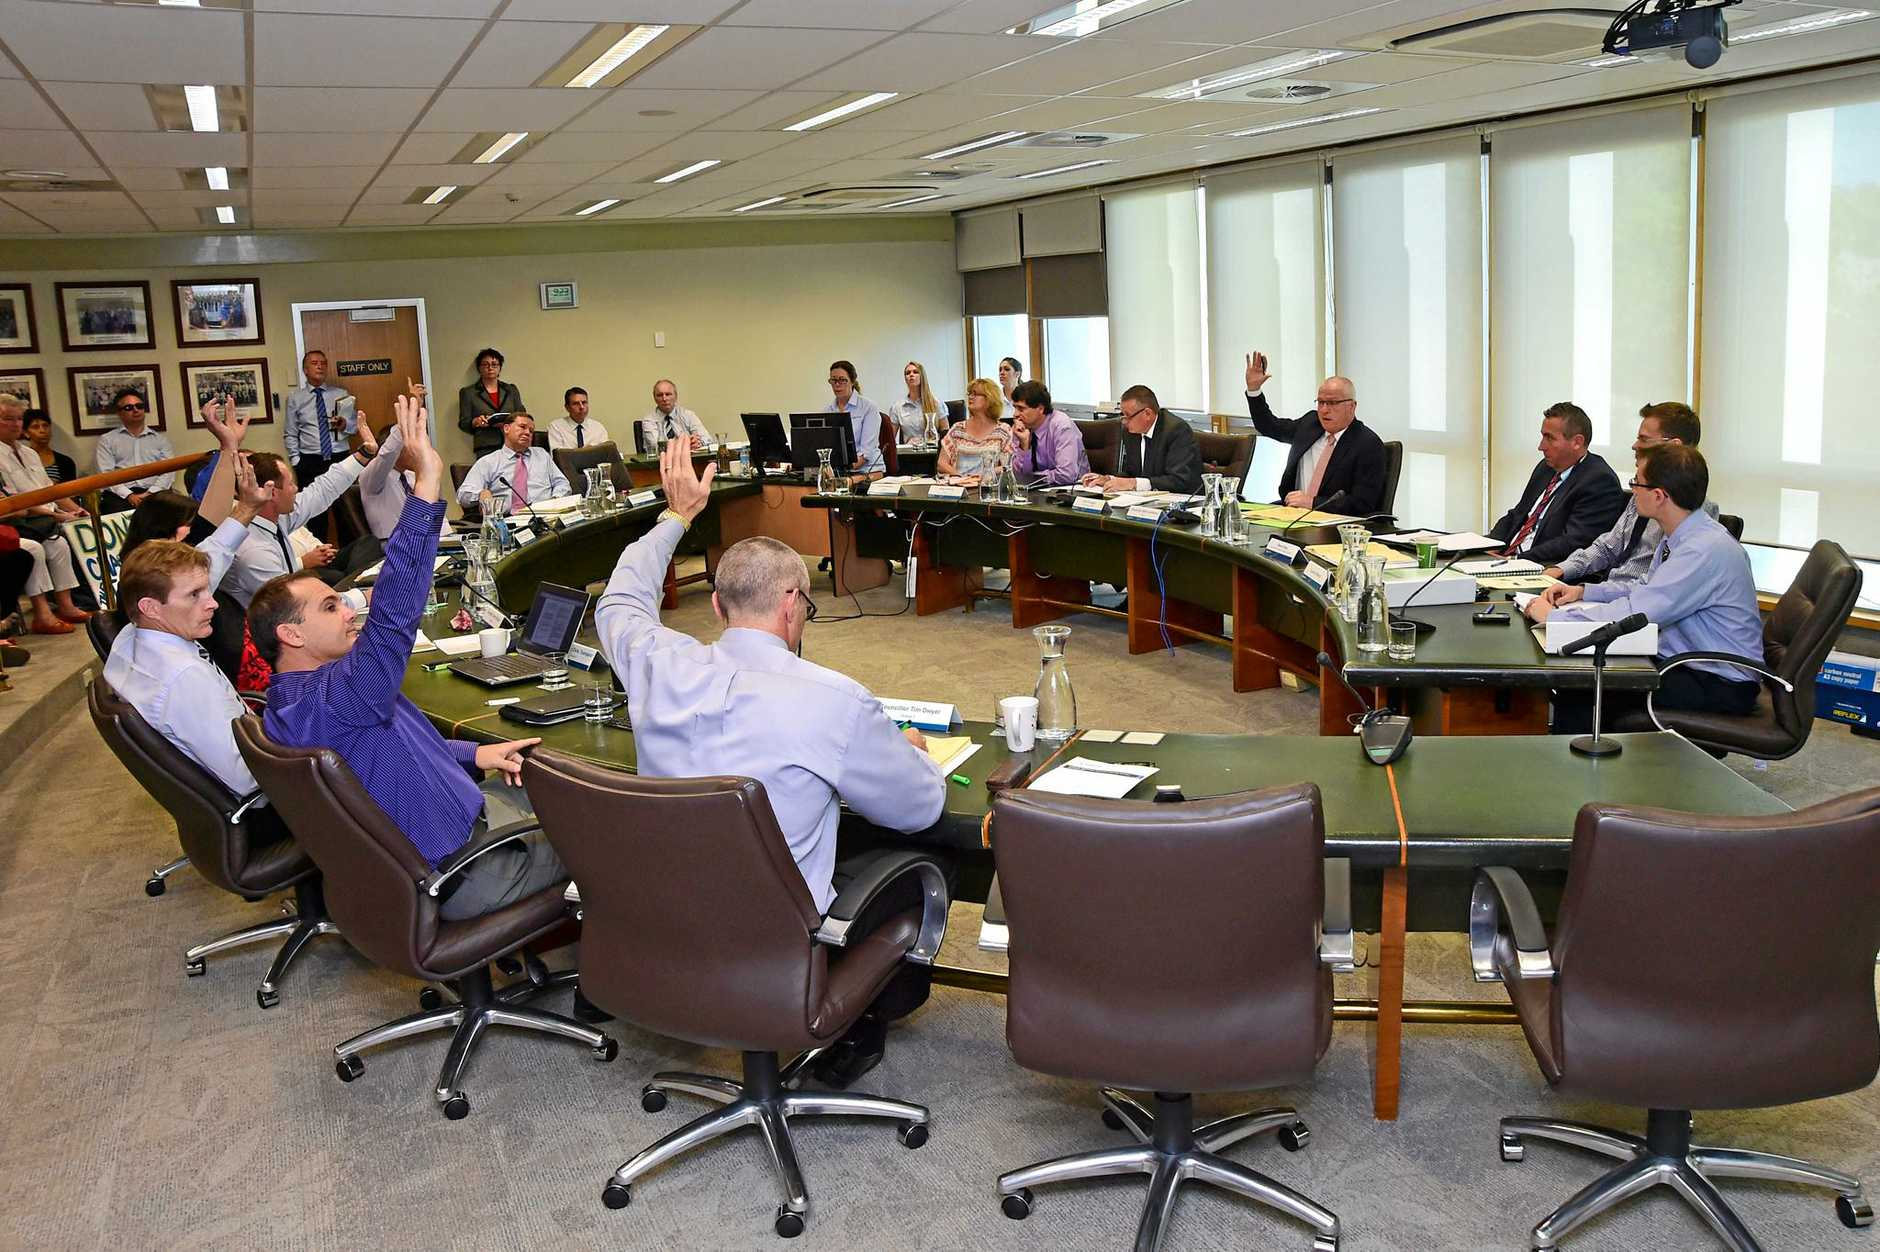 Council members inside the Nambour Council Chambers all agree, with the exception on Councillor Jason O'Pray, to defer a decision regarding the high rise Sekesui development at Yaroomba. Photo: Iain Curry / Sunshine Coast Daily